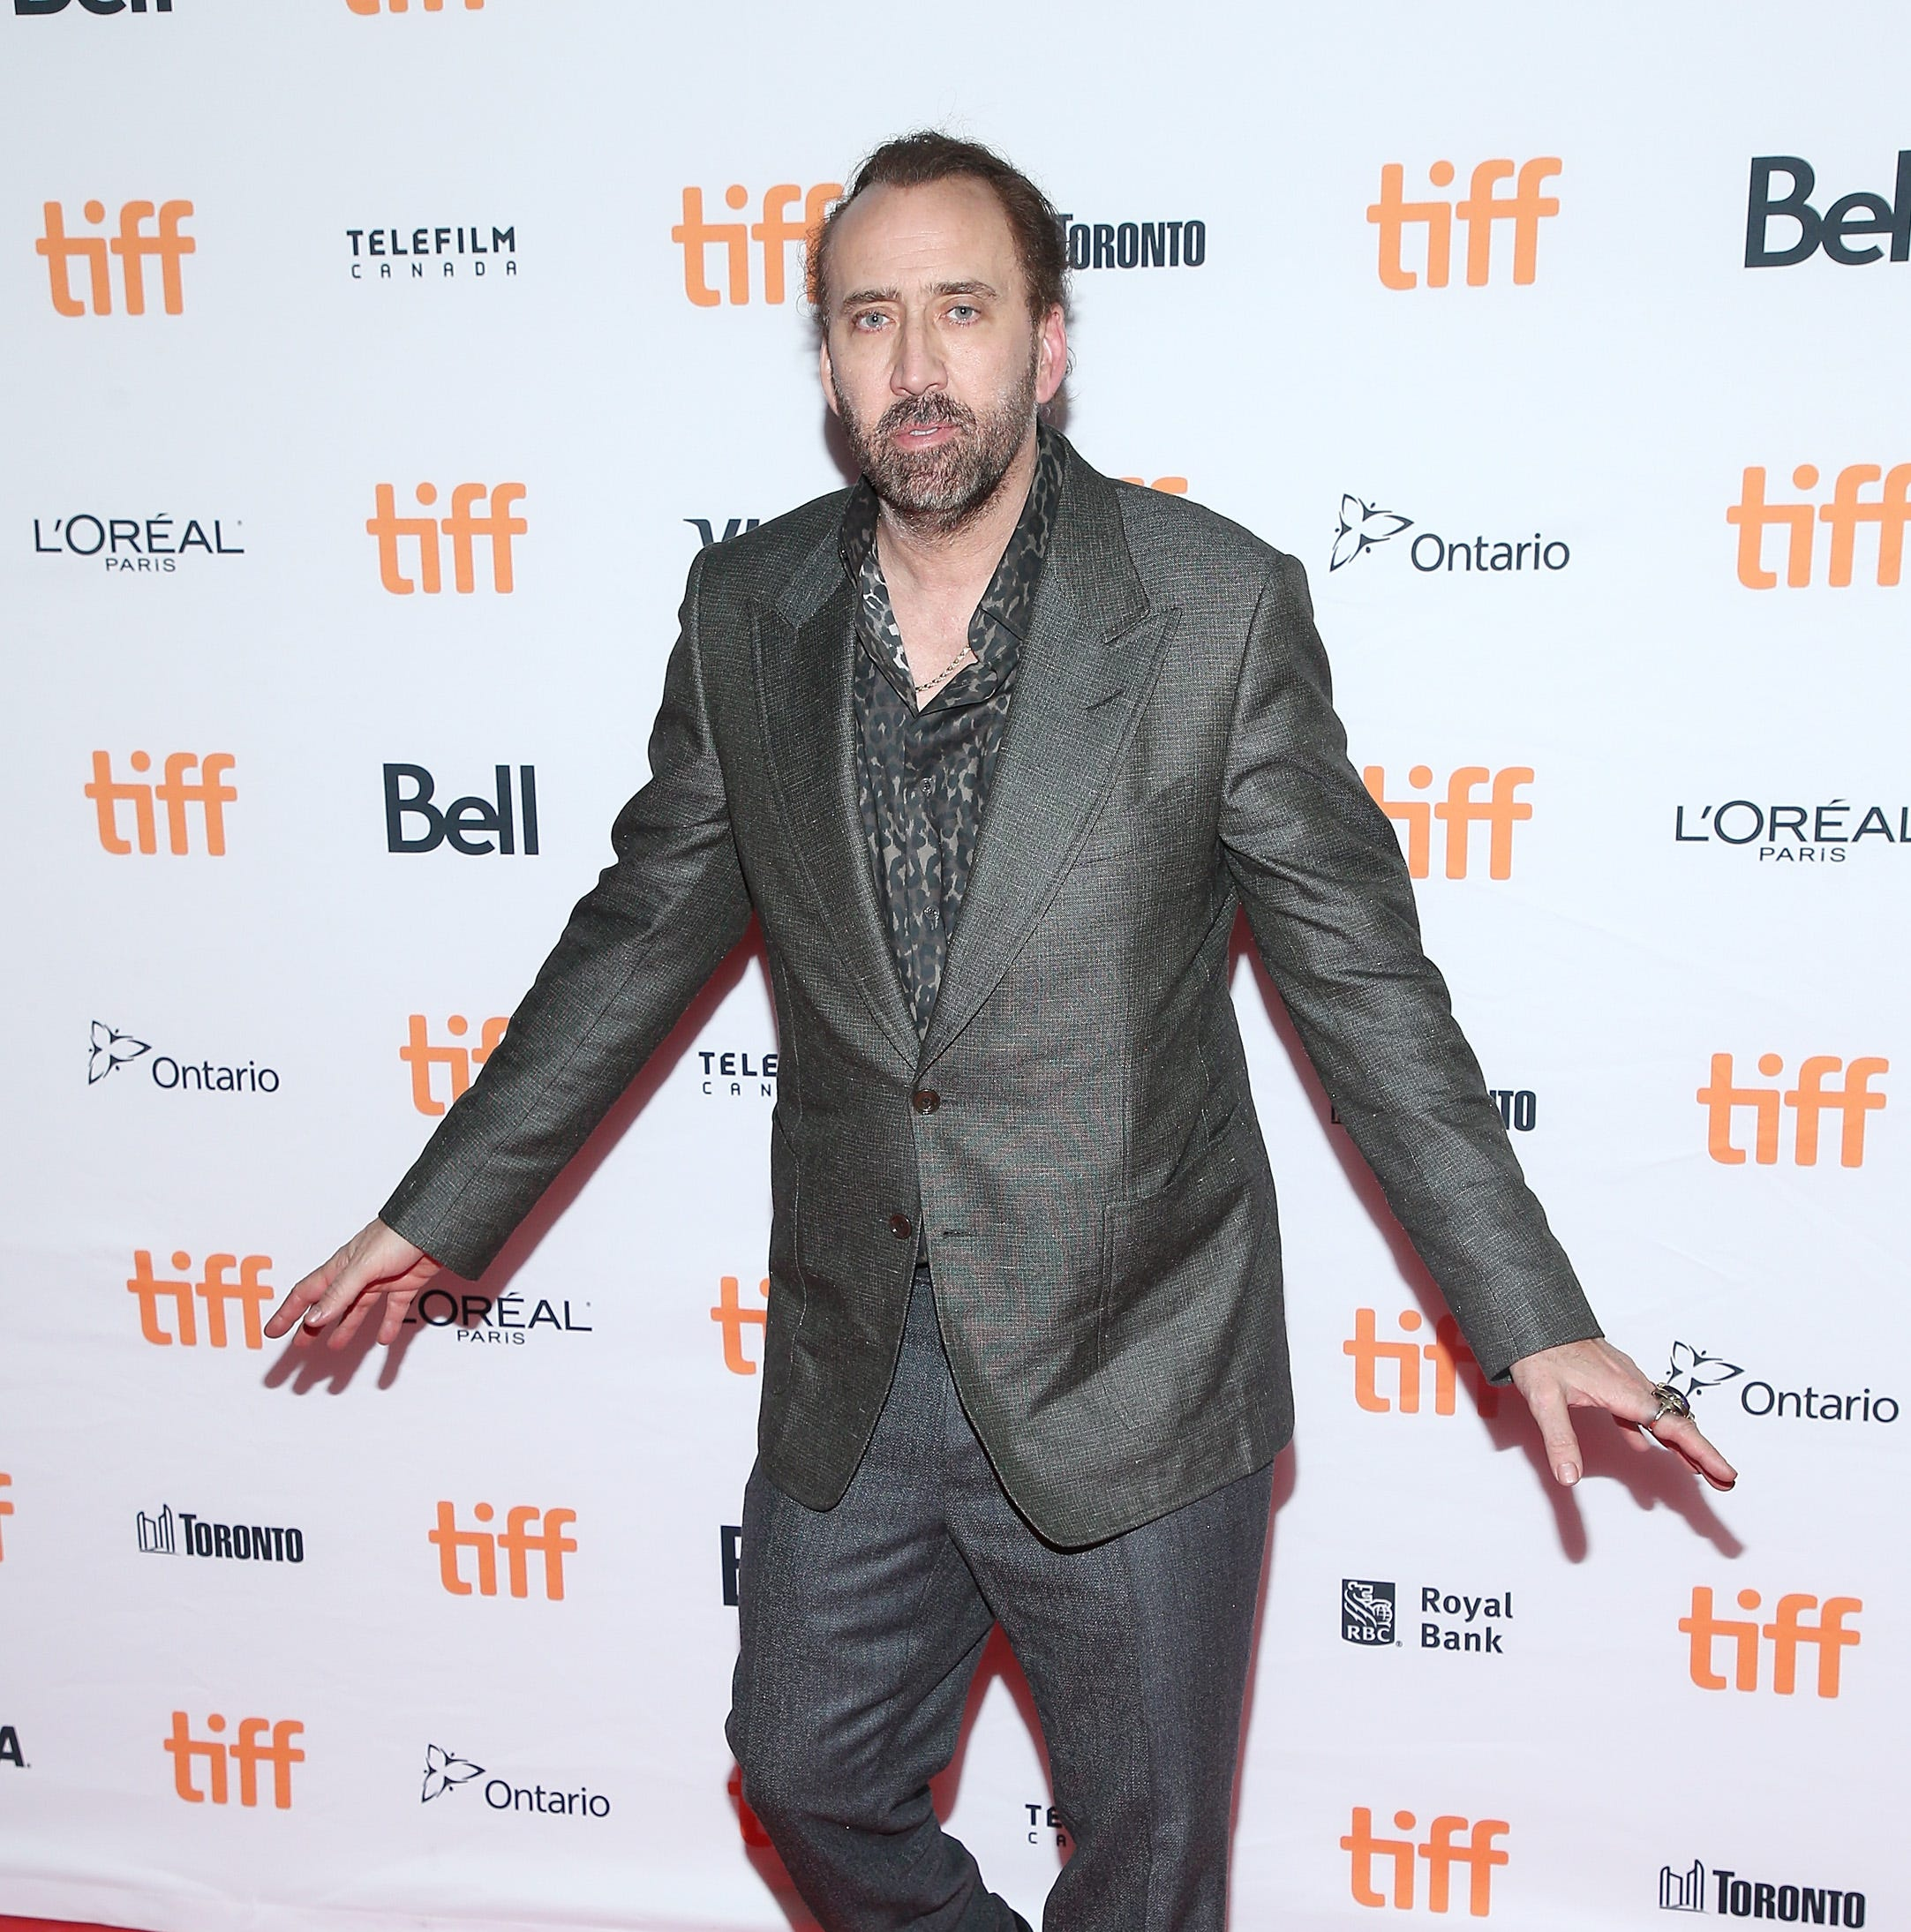 Nicolas Cage files for annulment 4 days after surprise marriage, reports say